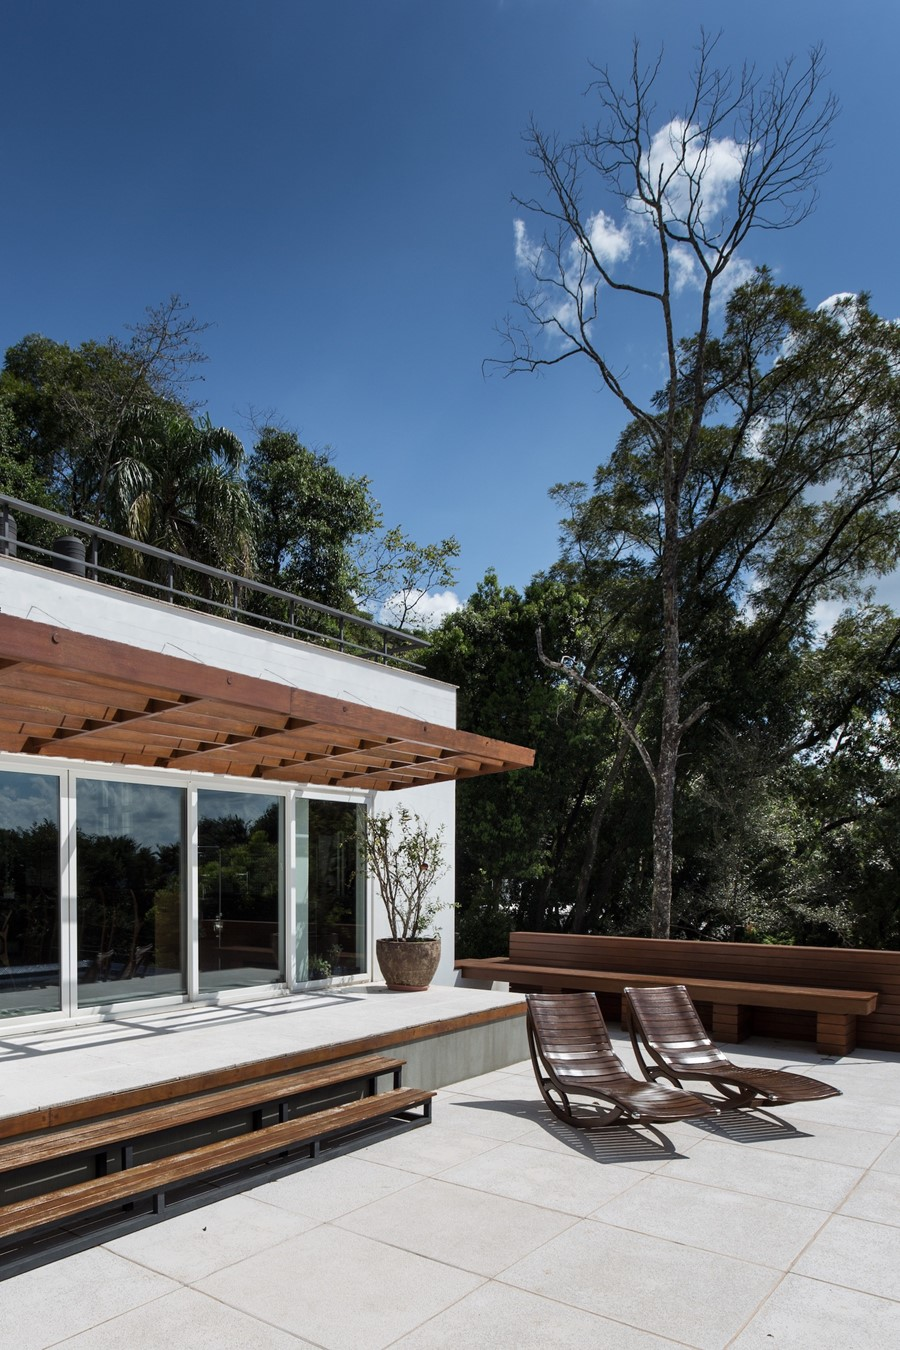 House 4.16.3 by Luciano Lerner Basso 09